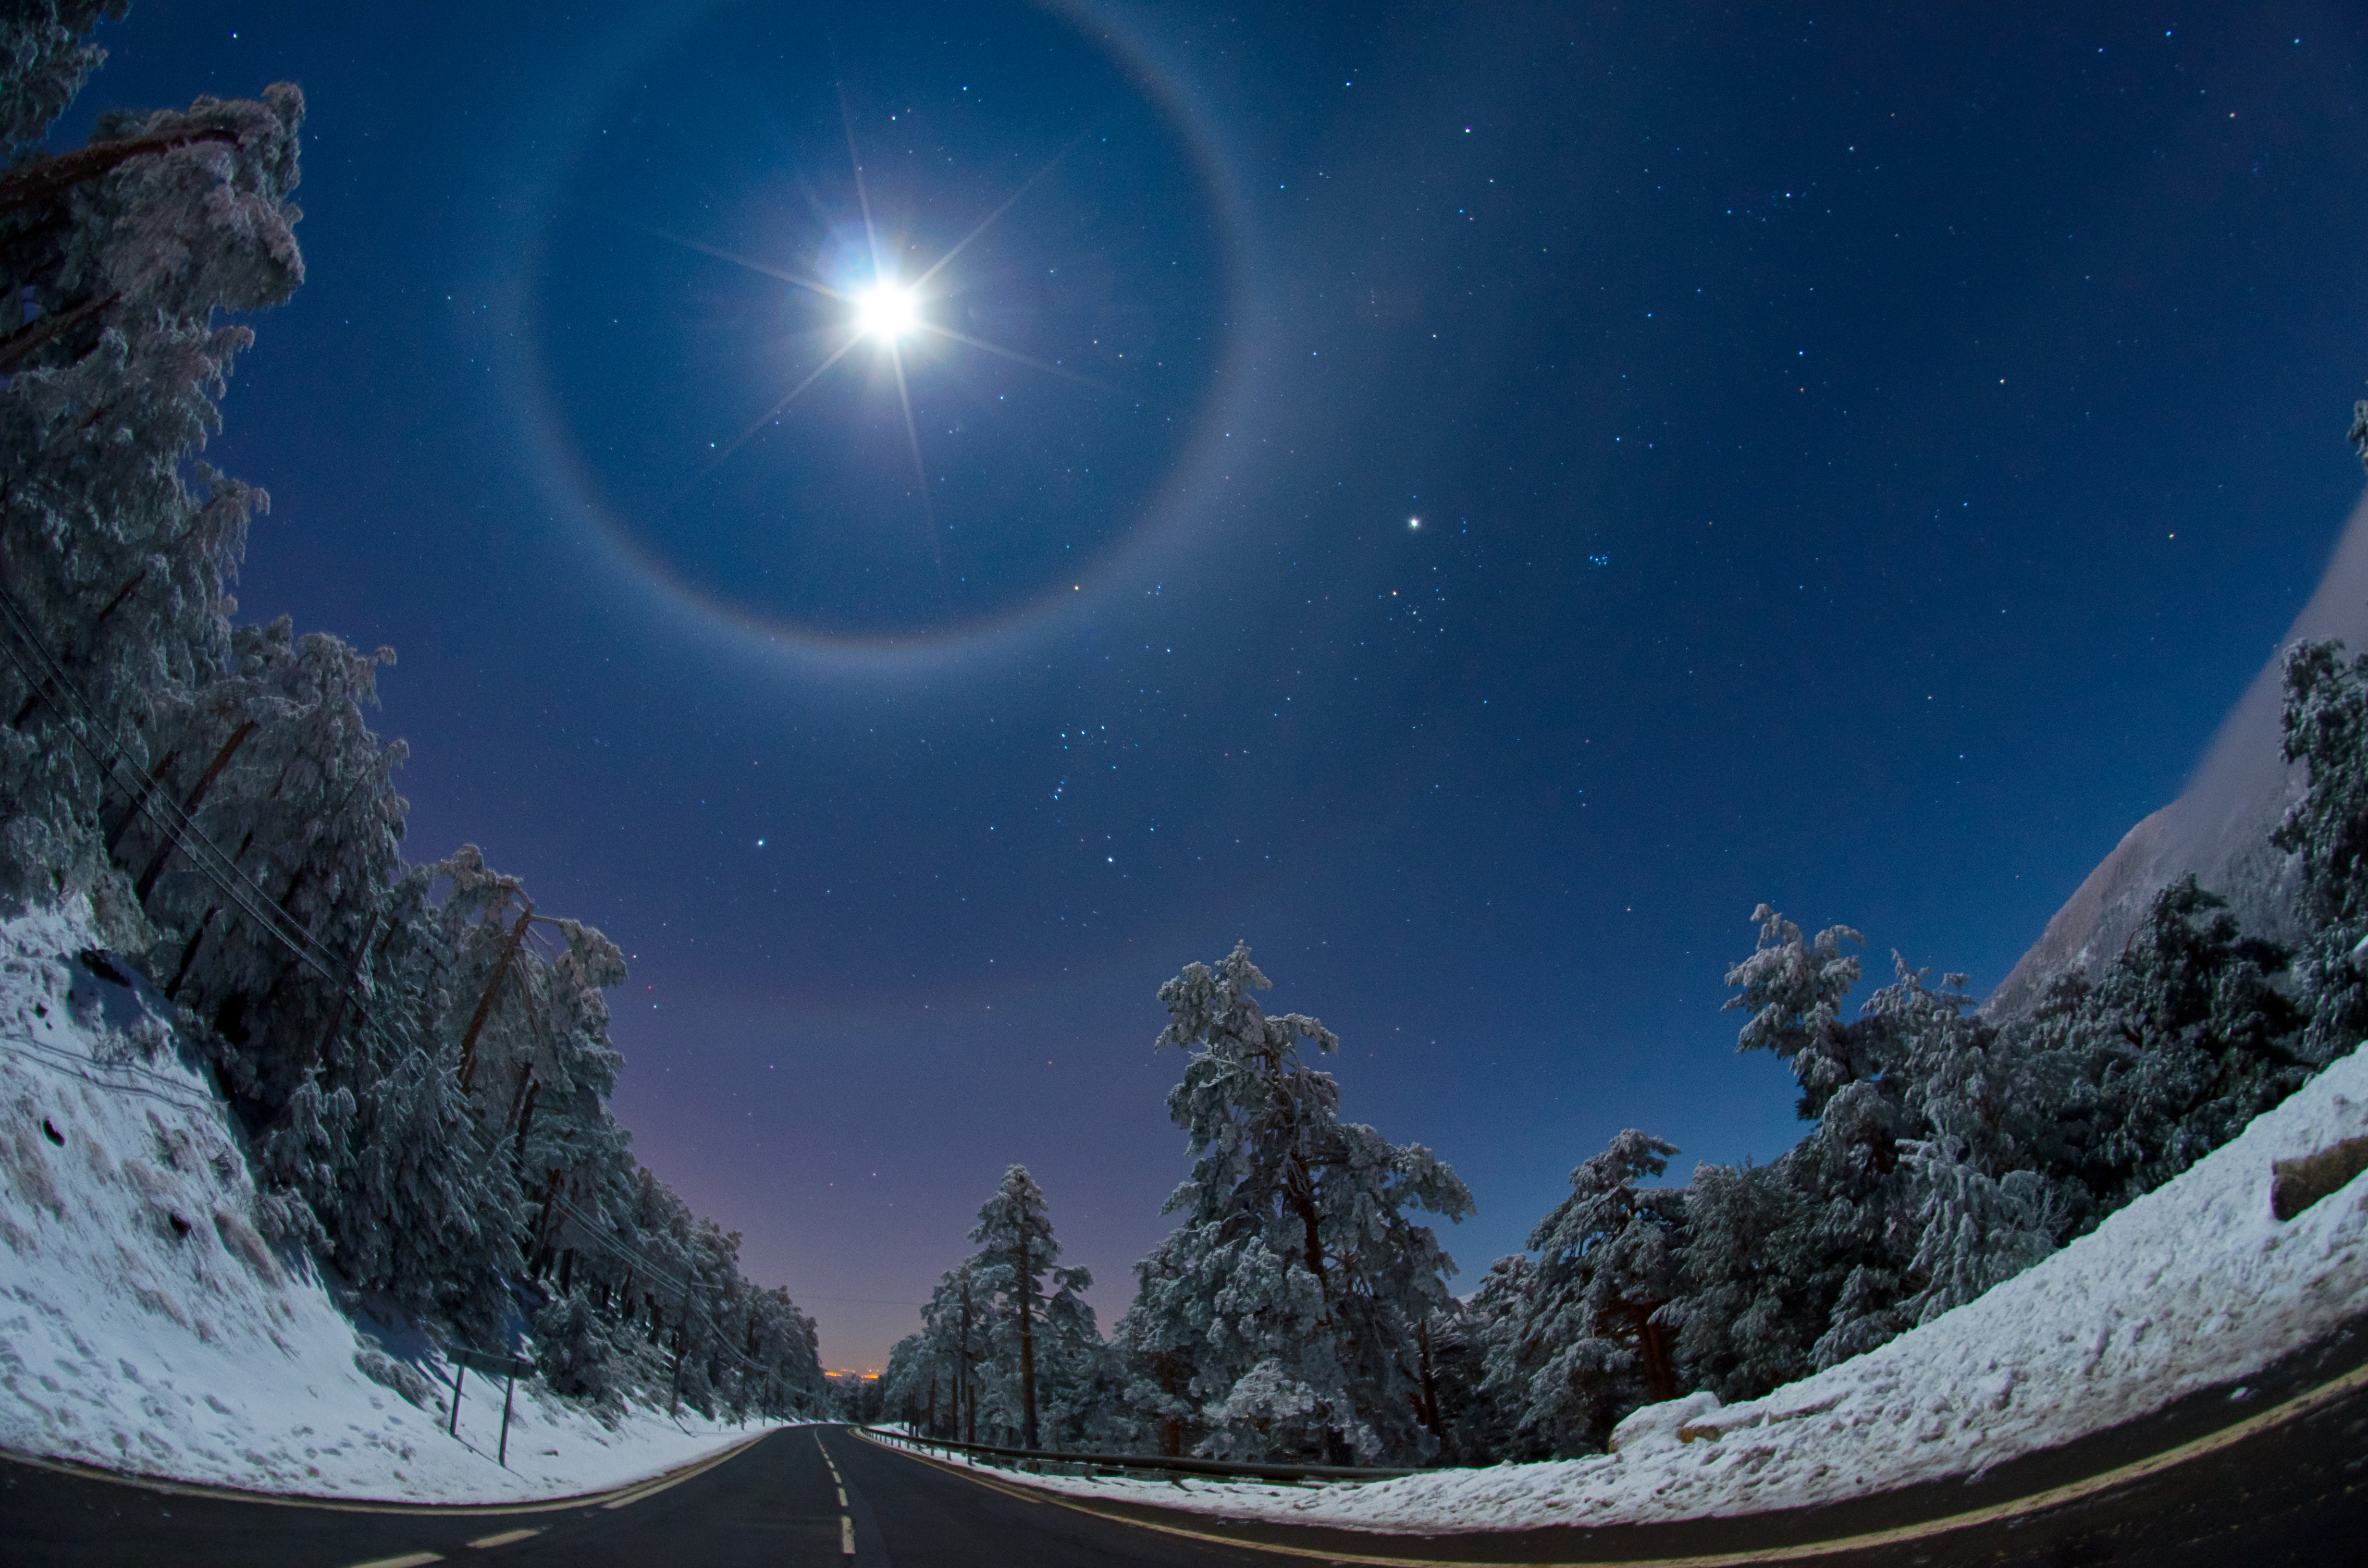 Earth and Space: A Quadruple Lunar Halo